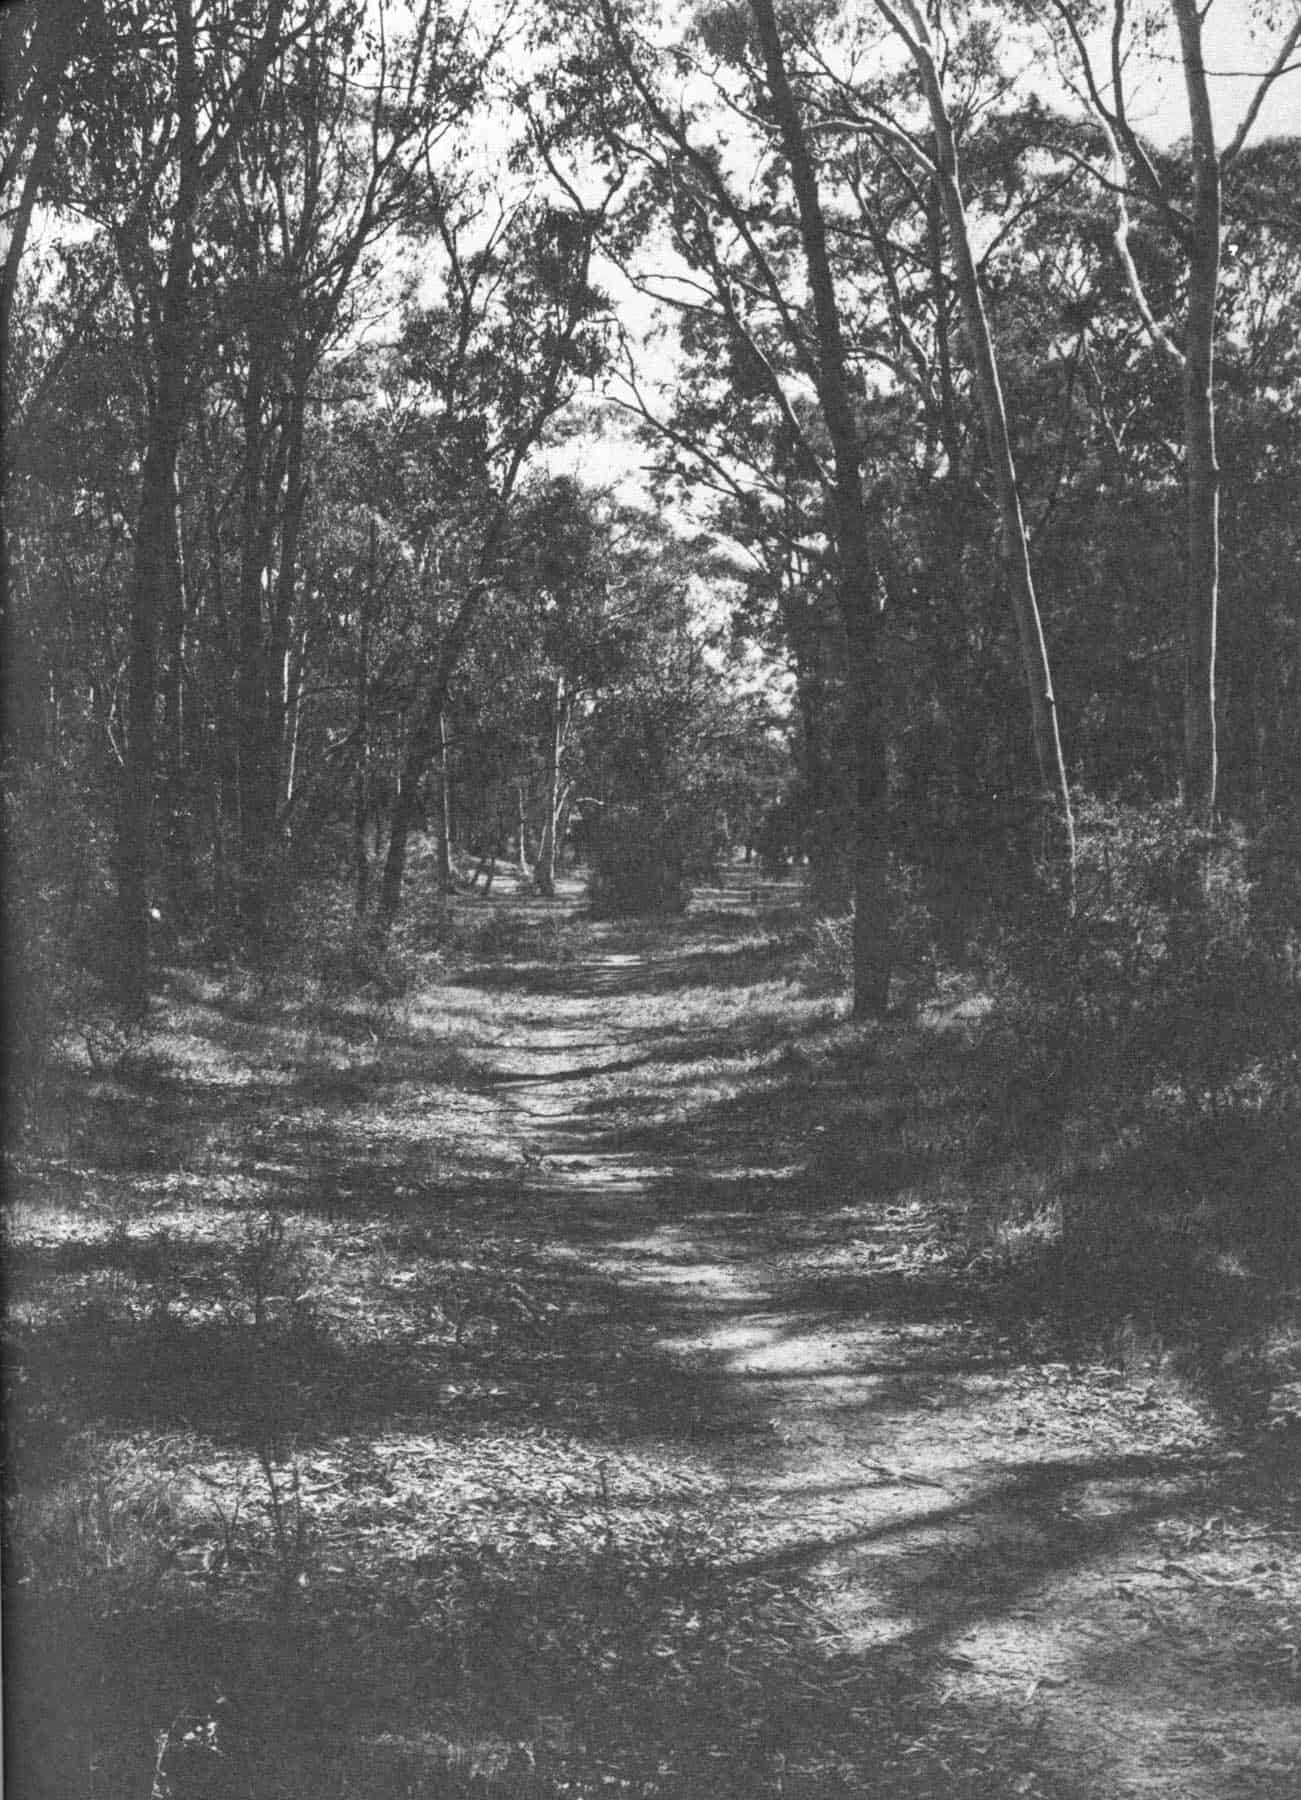 A view of the linear park fro Eucalyptus Rd